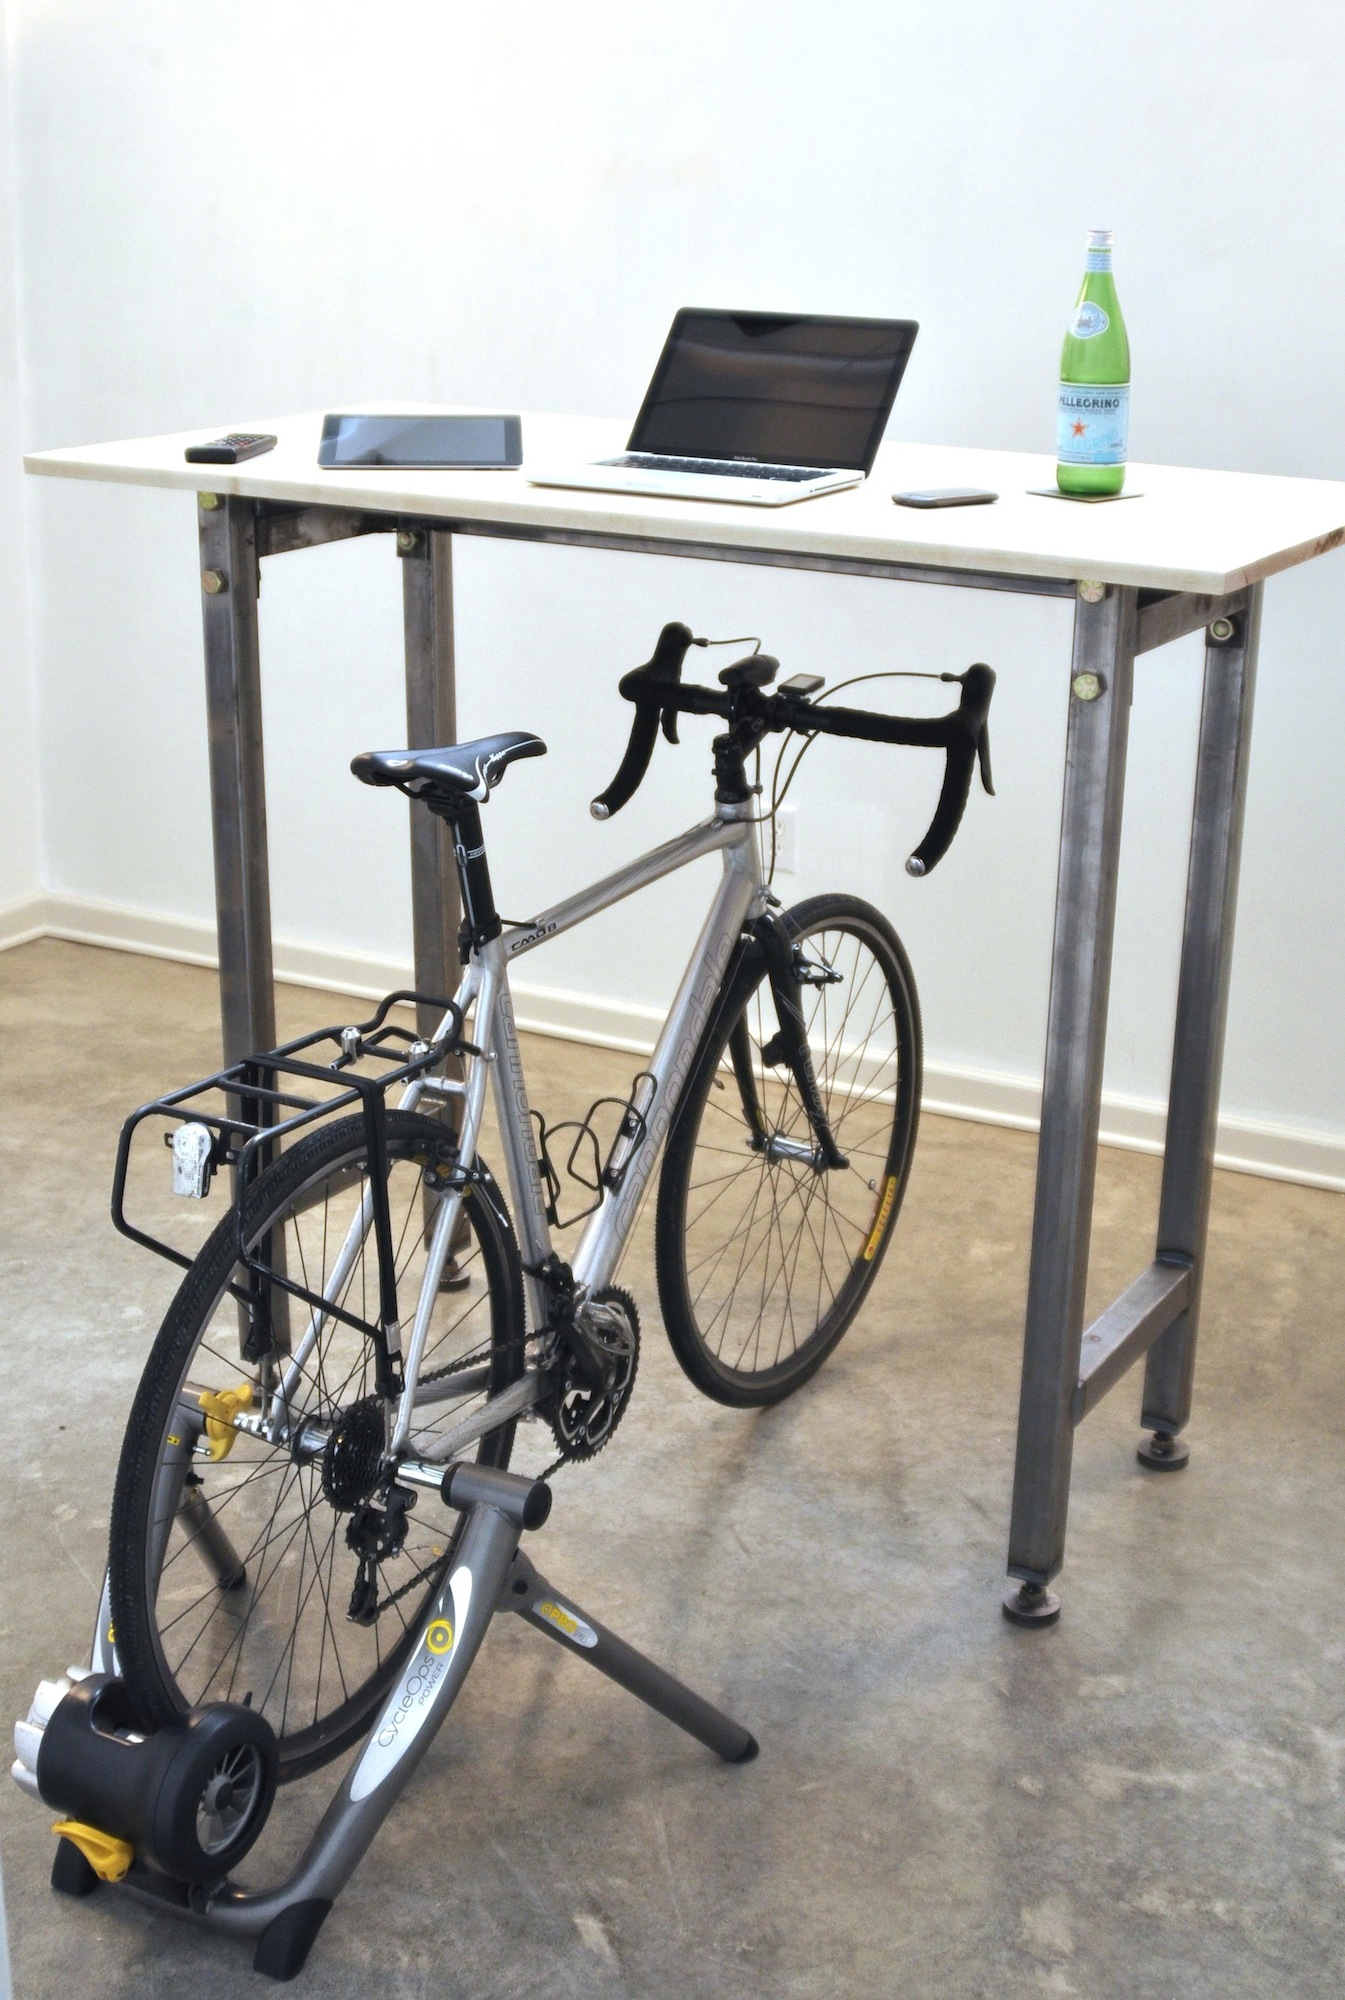 to desktop products exercise stay shape in bicycle while medium stationary desk of chair help computer bike you recumbent top work size office